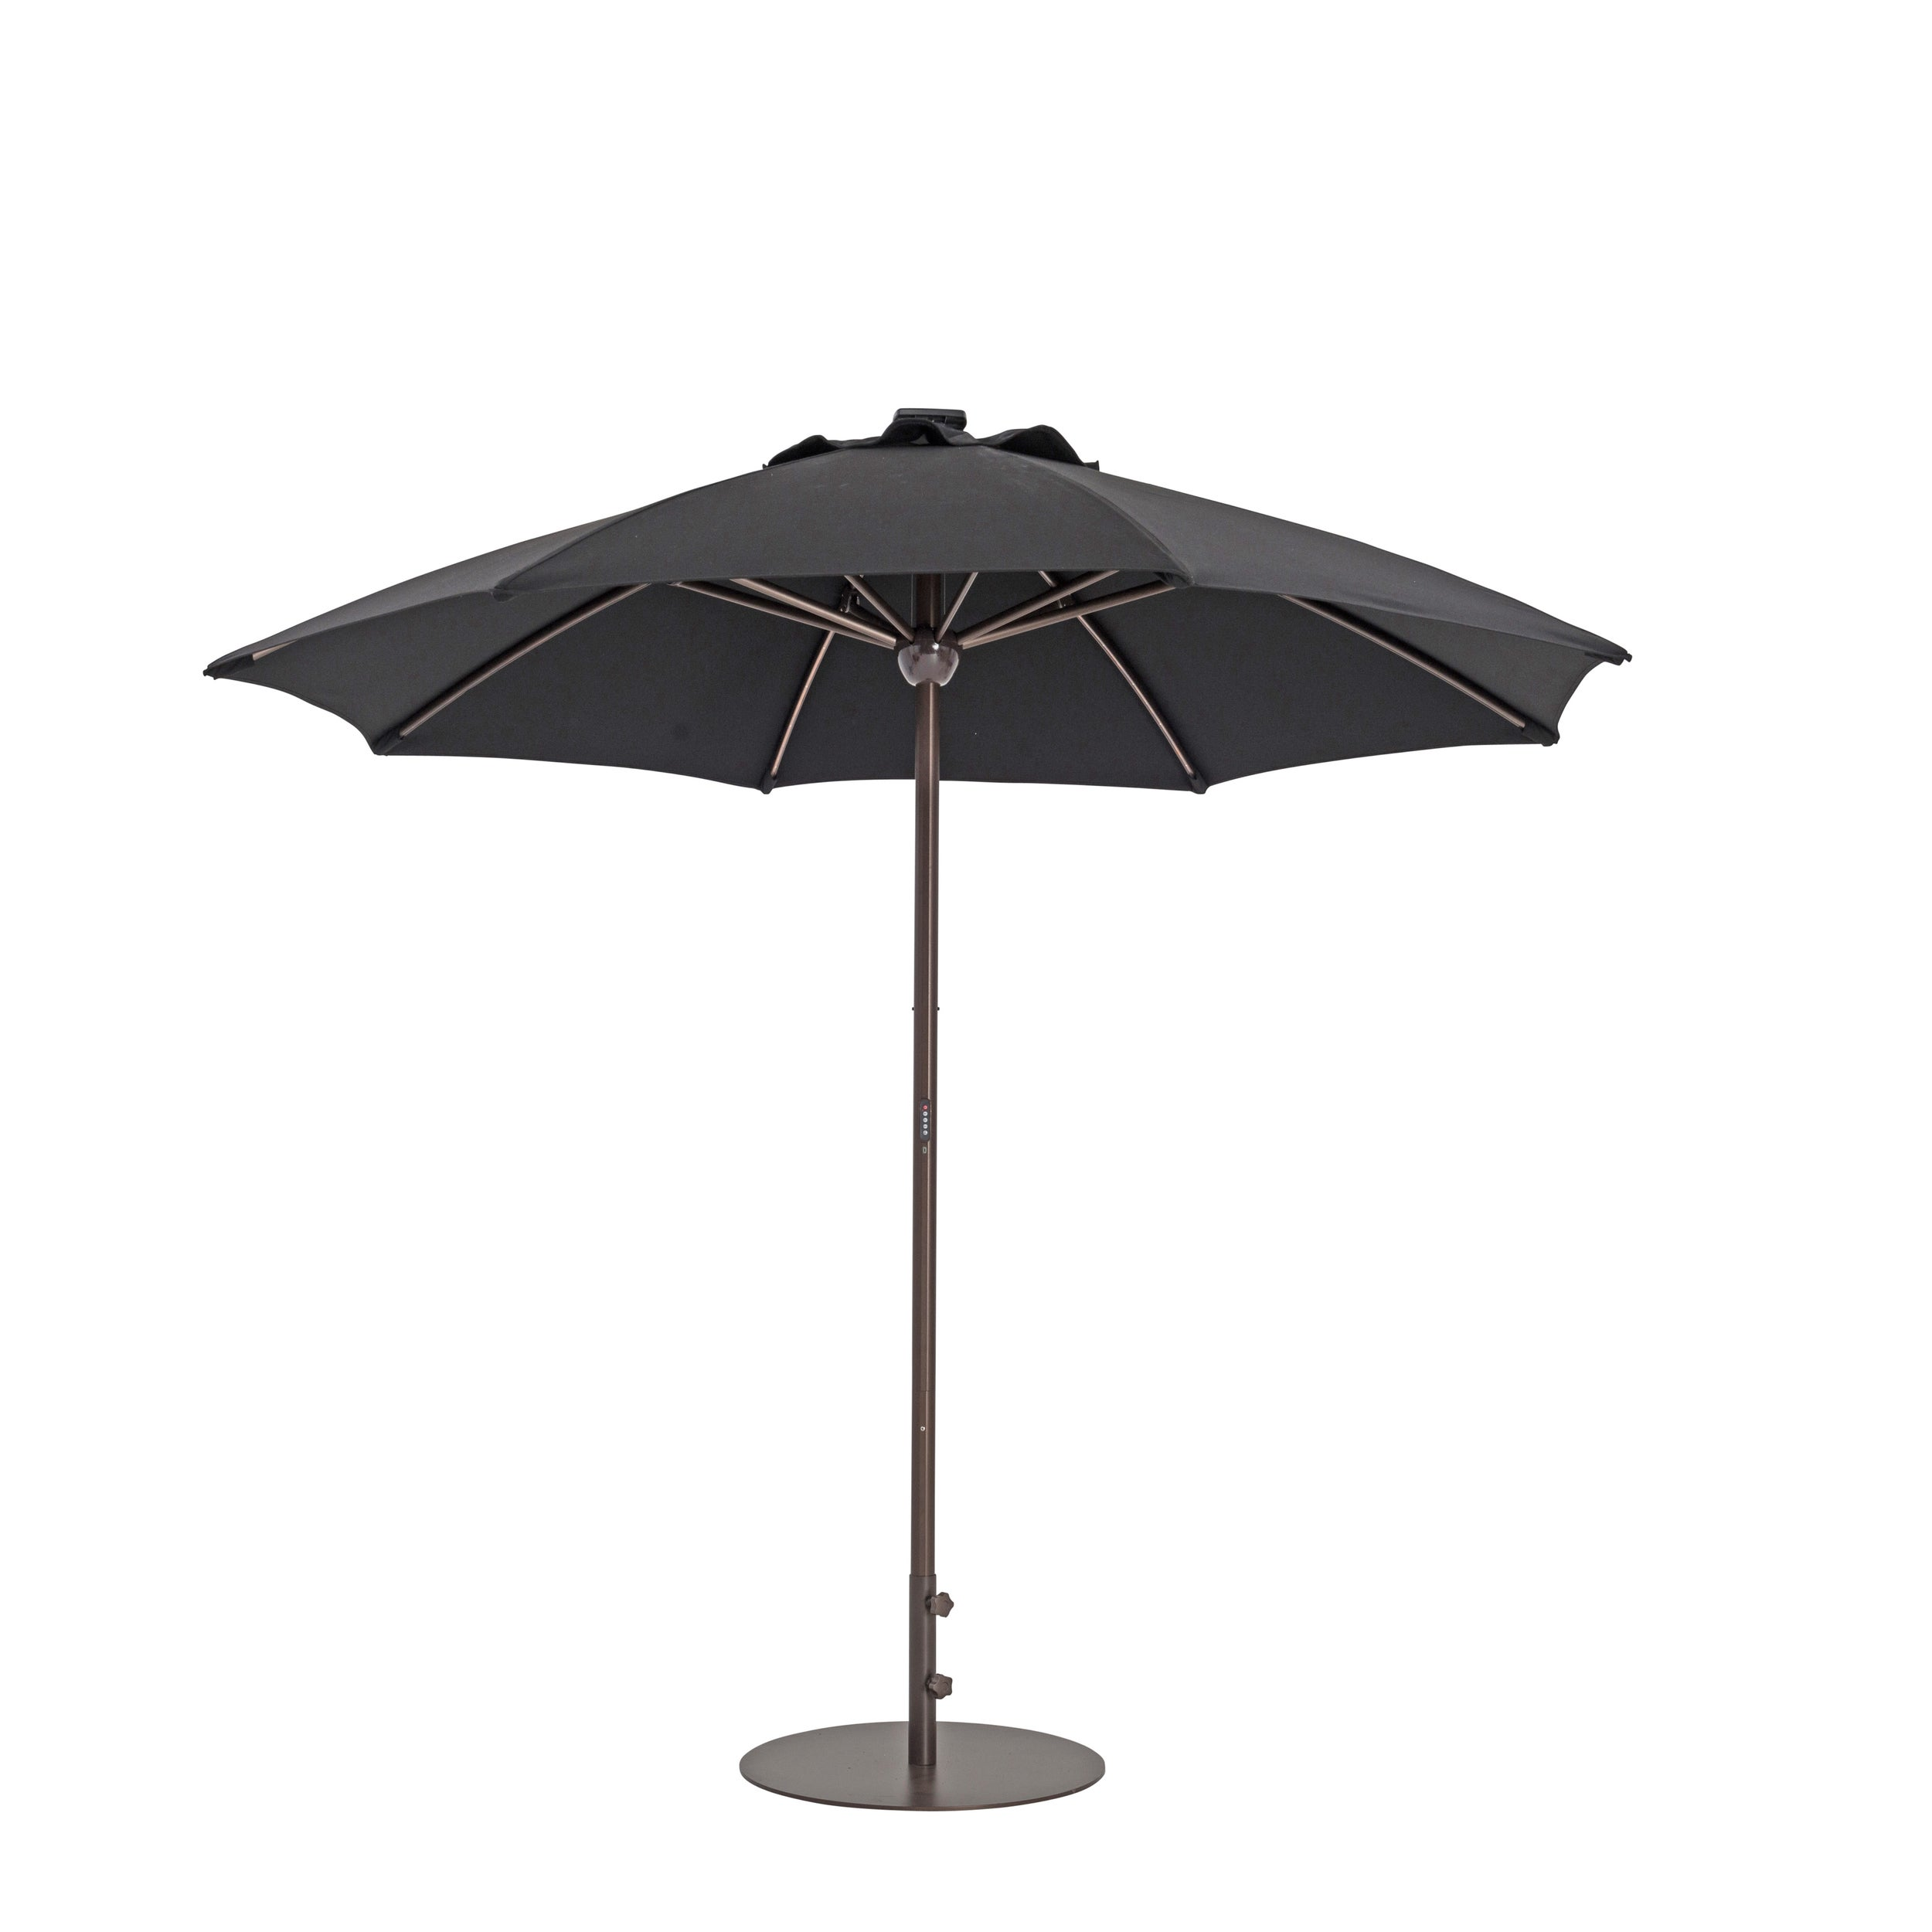 Picture 6 of 10  sc 1 st  eBay & 9 Ft. Automatic Market Patio Umbrella With Lights in Black   eBay